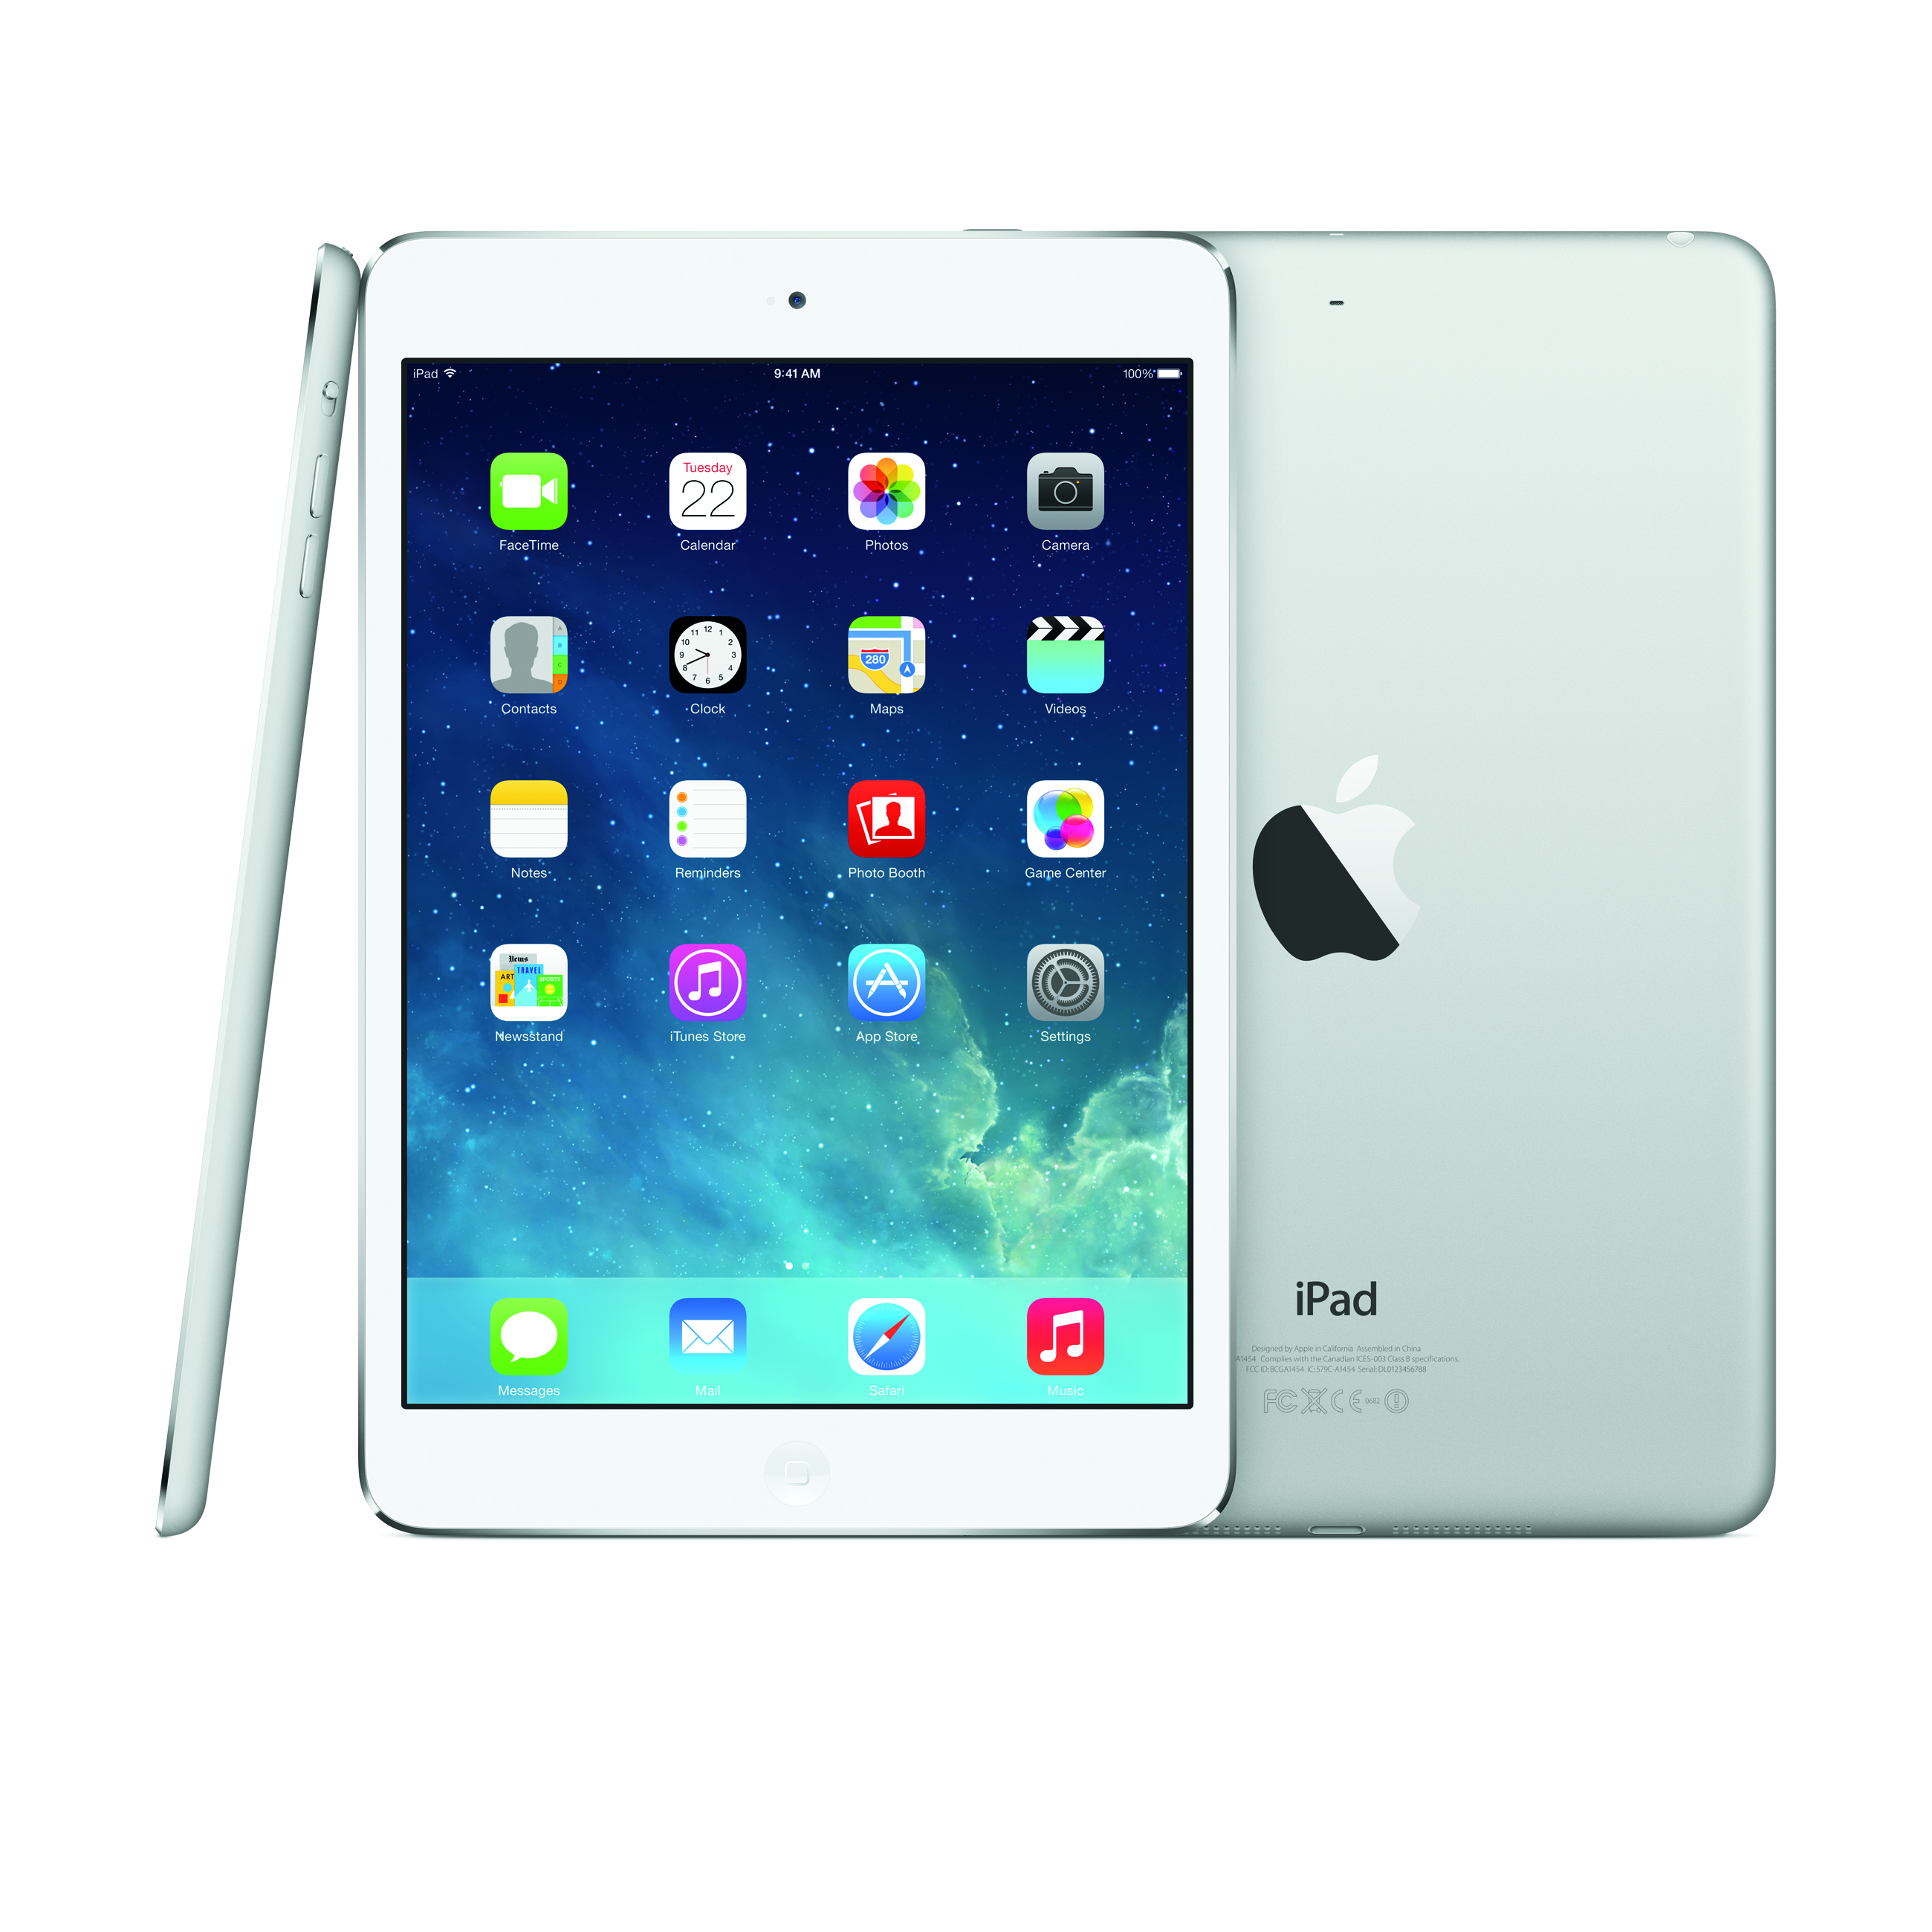 ipad mini with retina display review the verge. Black Bedroom Furniture Sets. Home Design Ideas